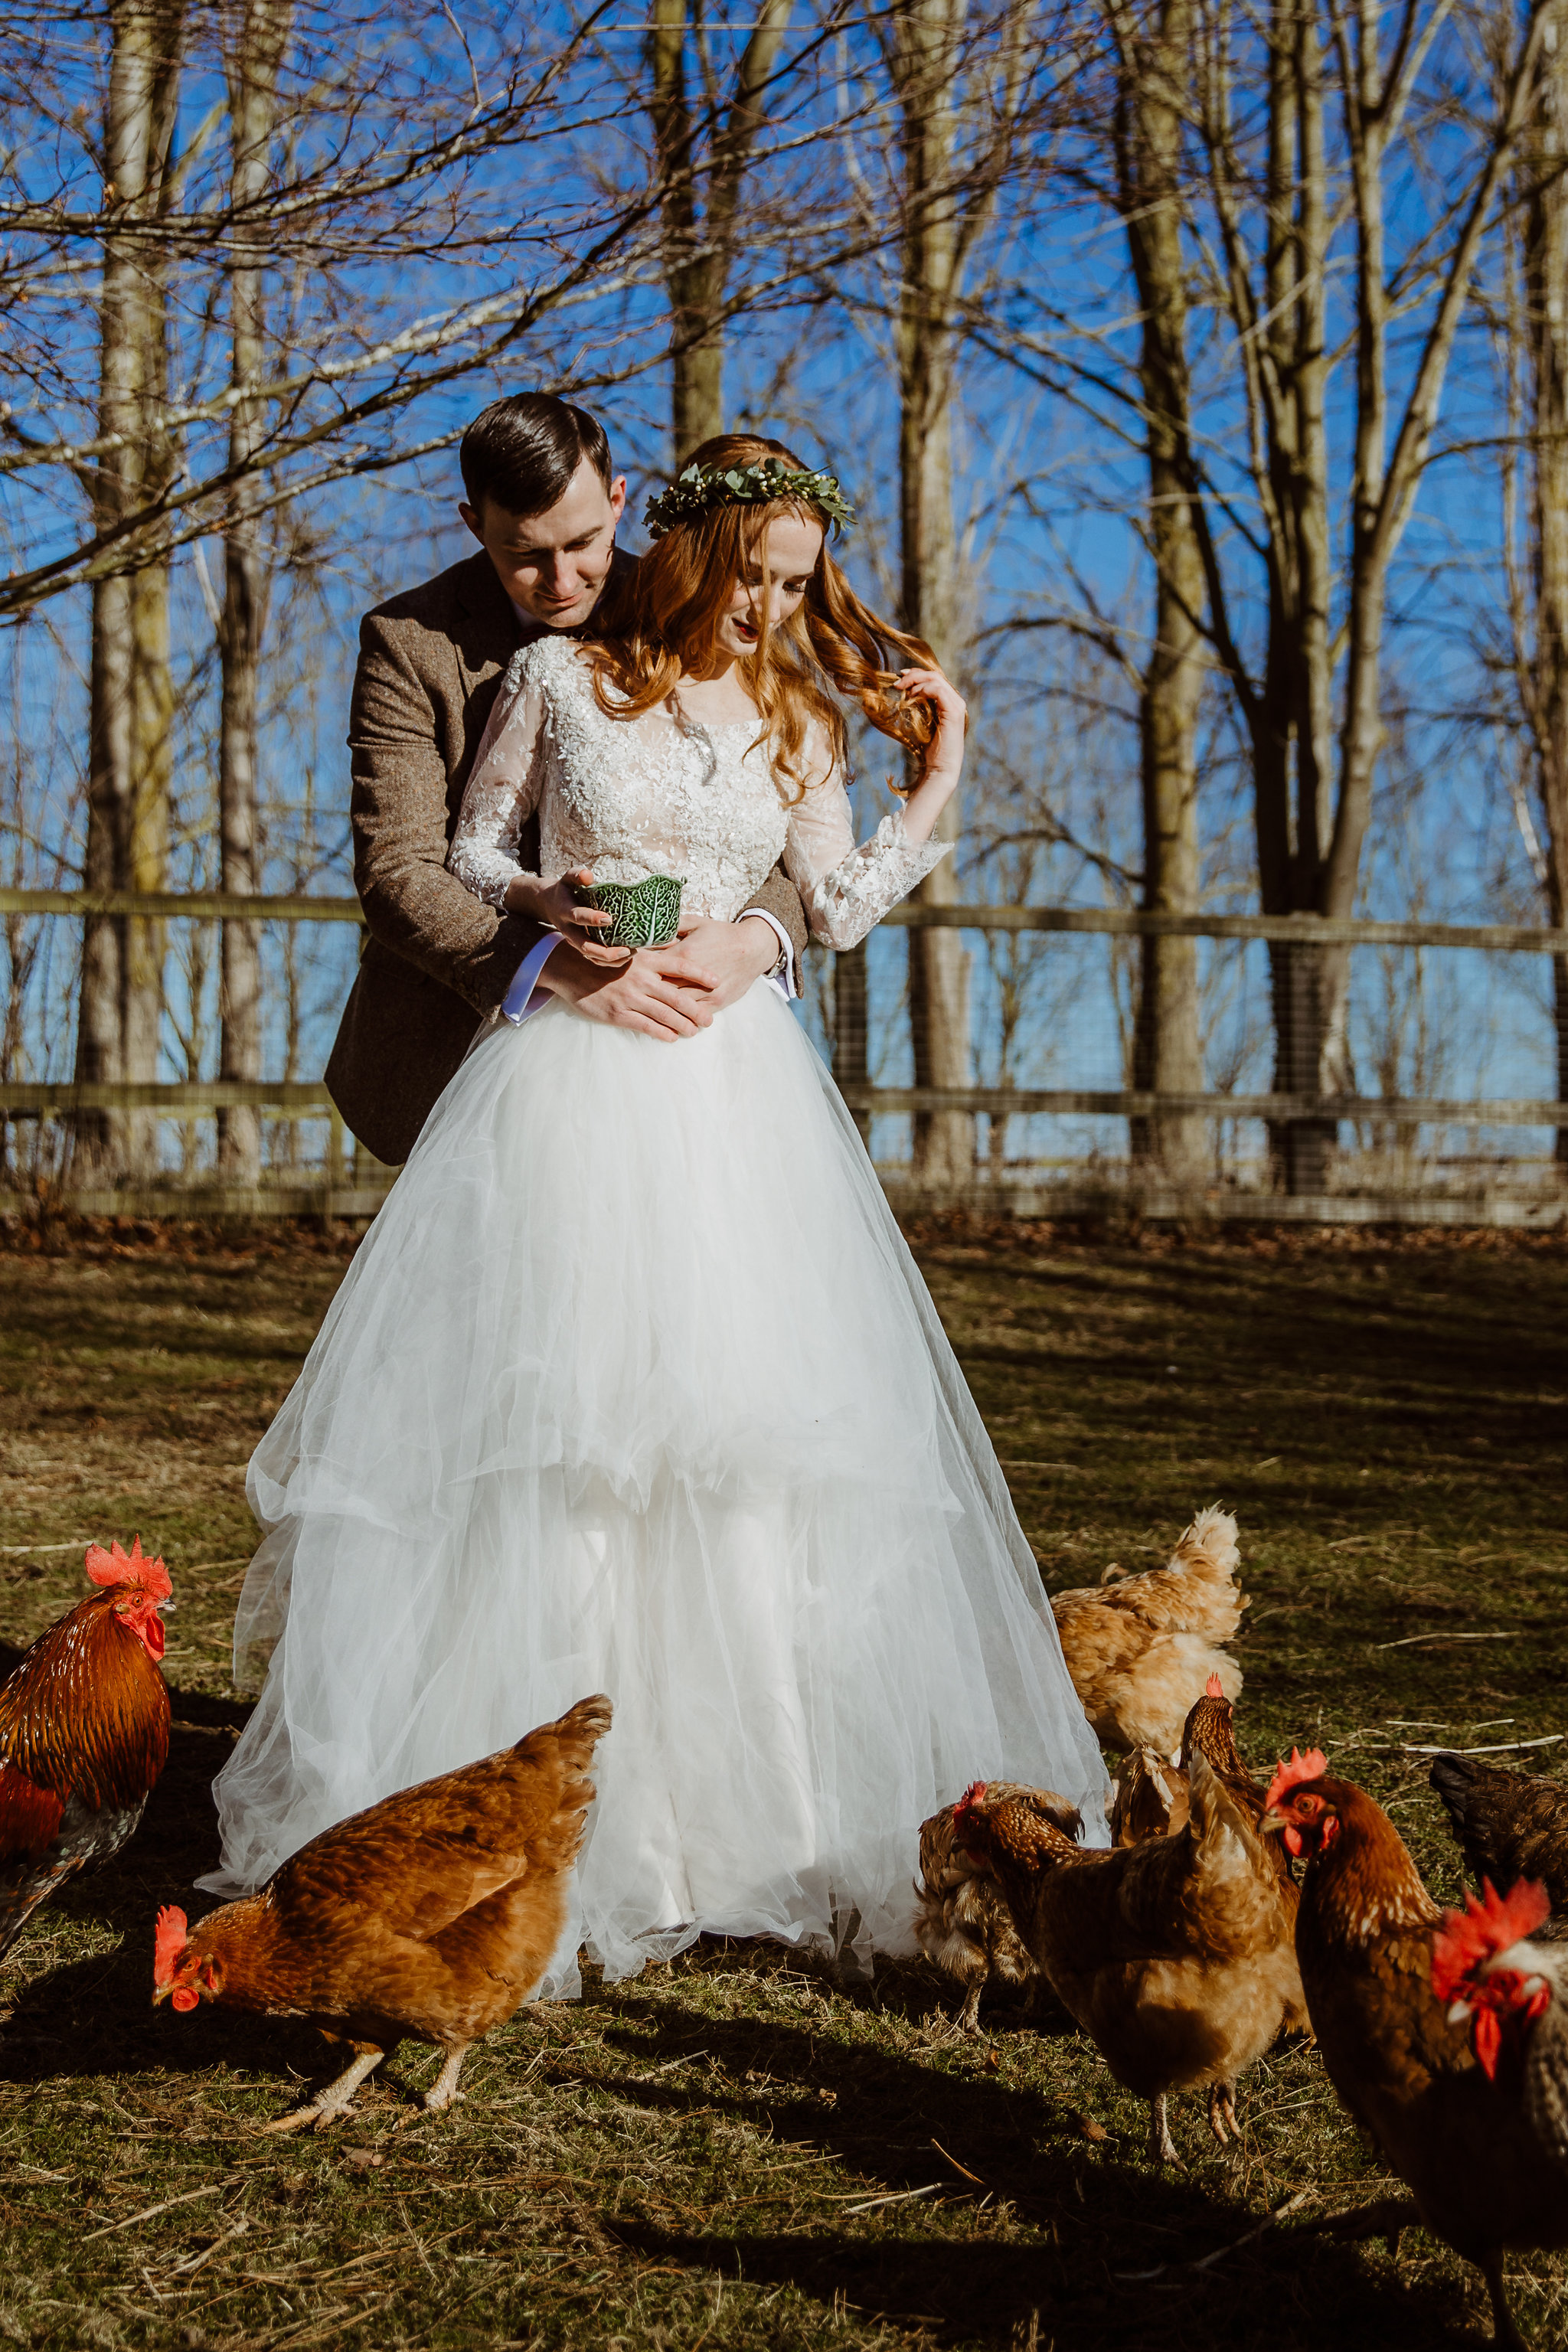 Bride and Groom with chickens